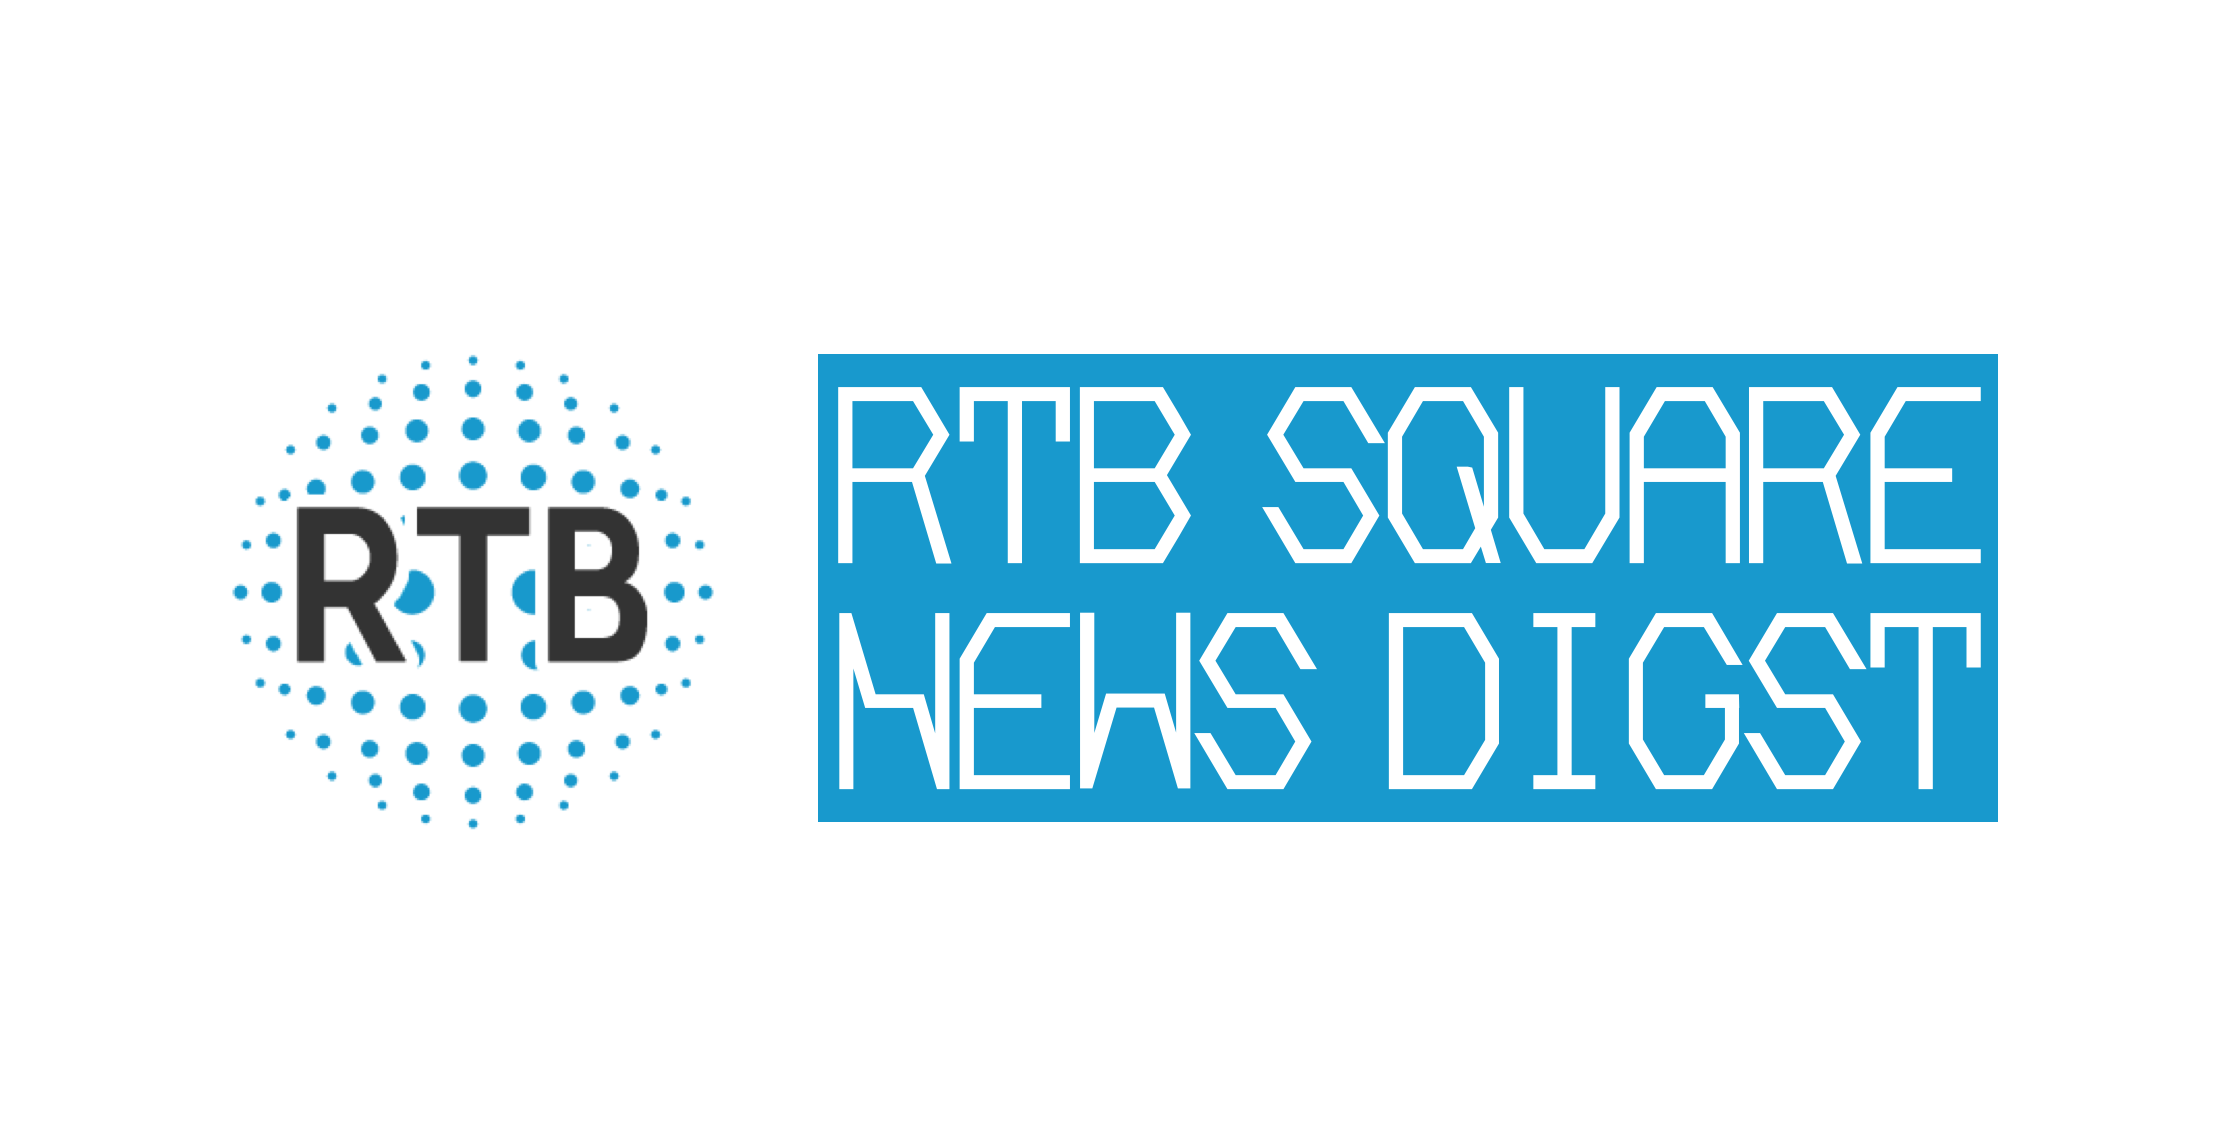 rtbsquare_news